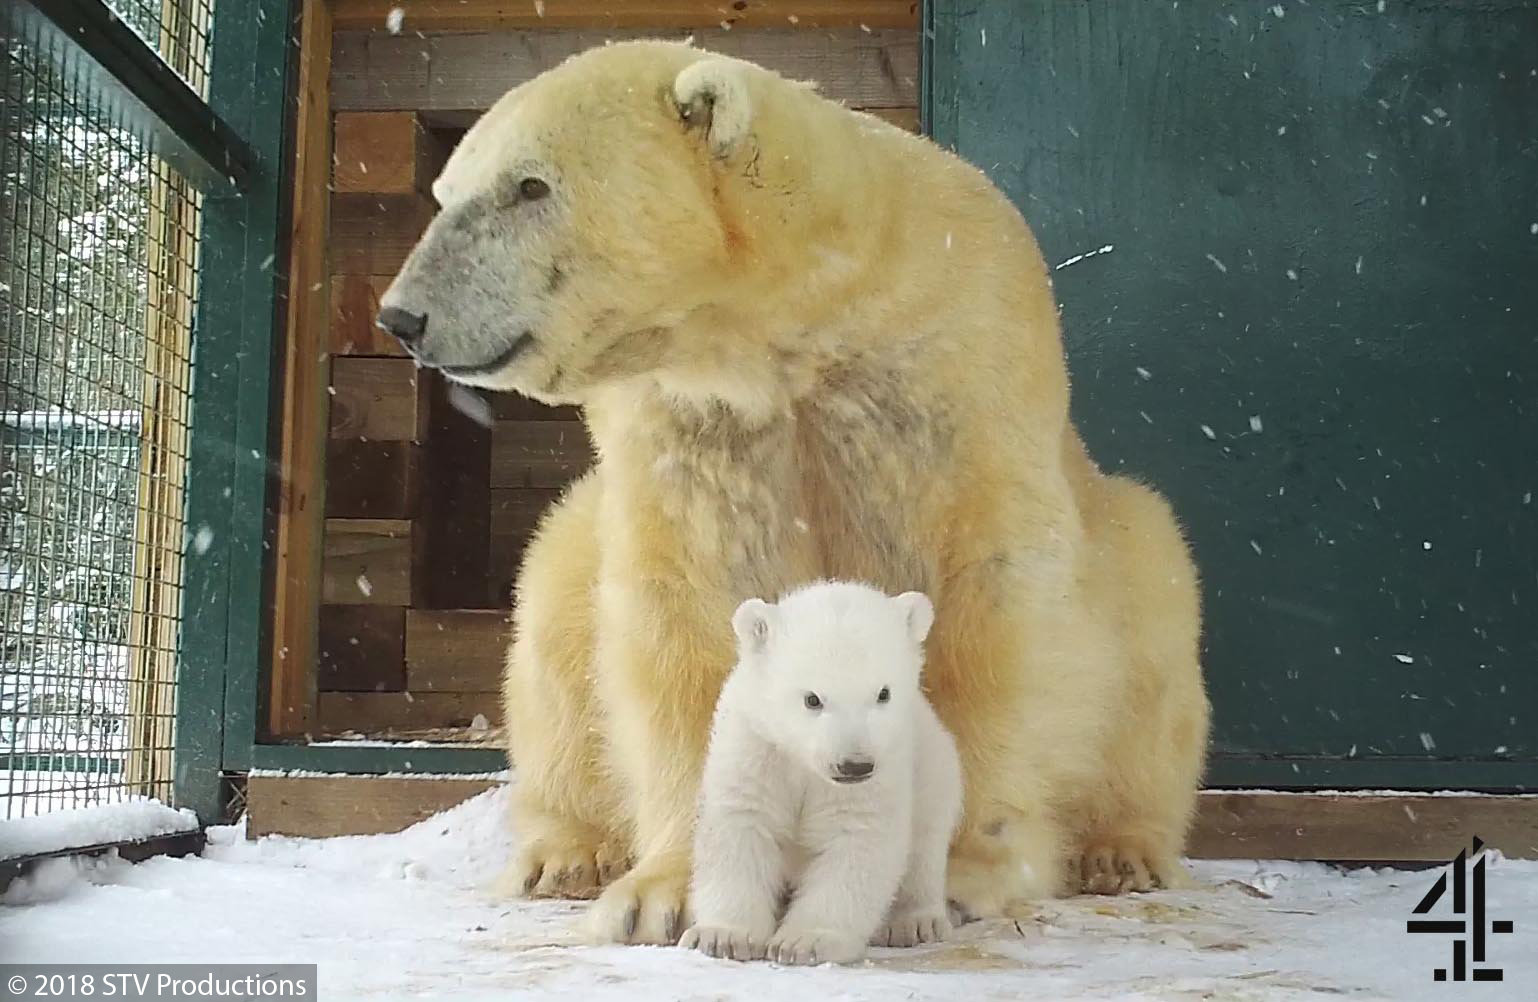 The first polar bear cub to be born in the UK for 25 years has emerged at the Royal Zoological Society of Scotland's Highland Wildlife Park. (RZSS)